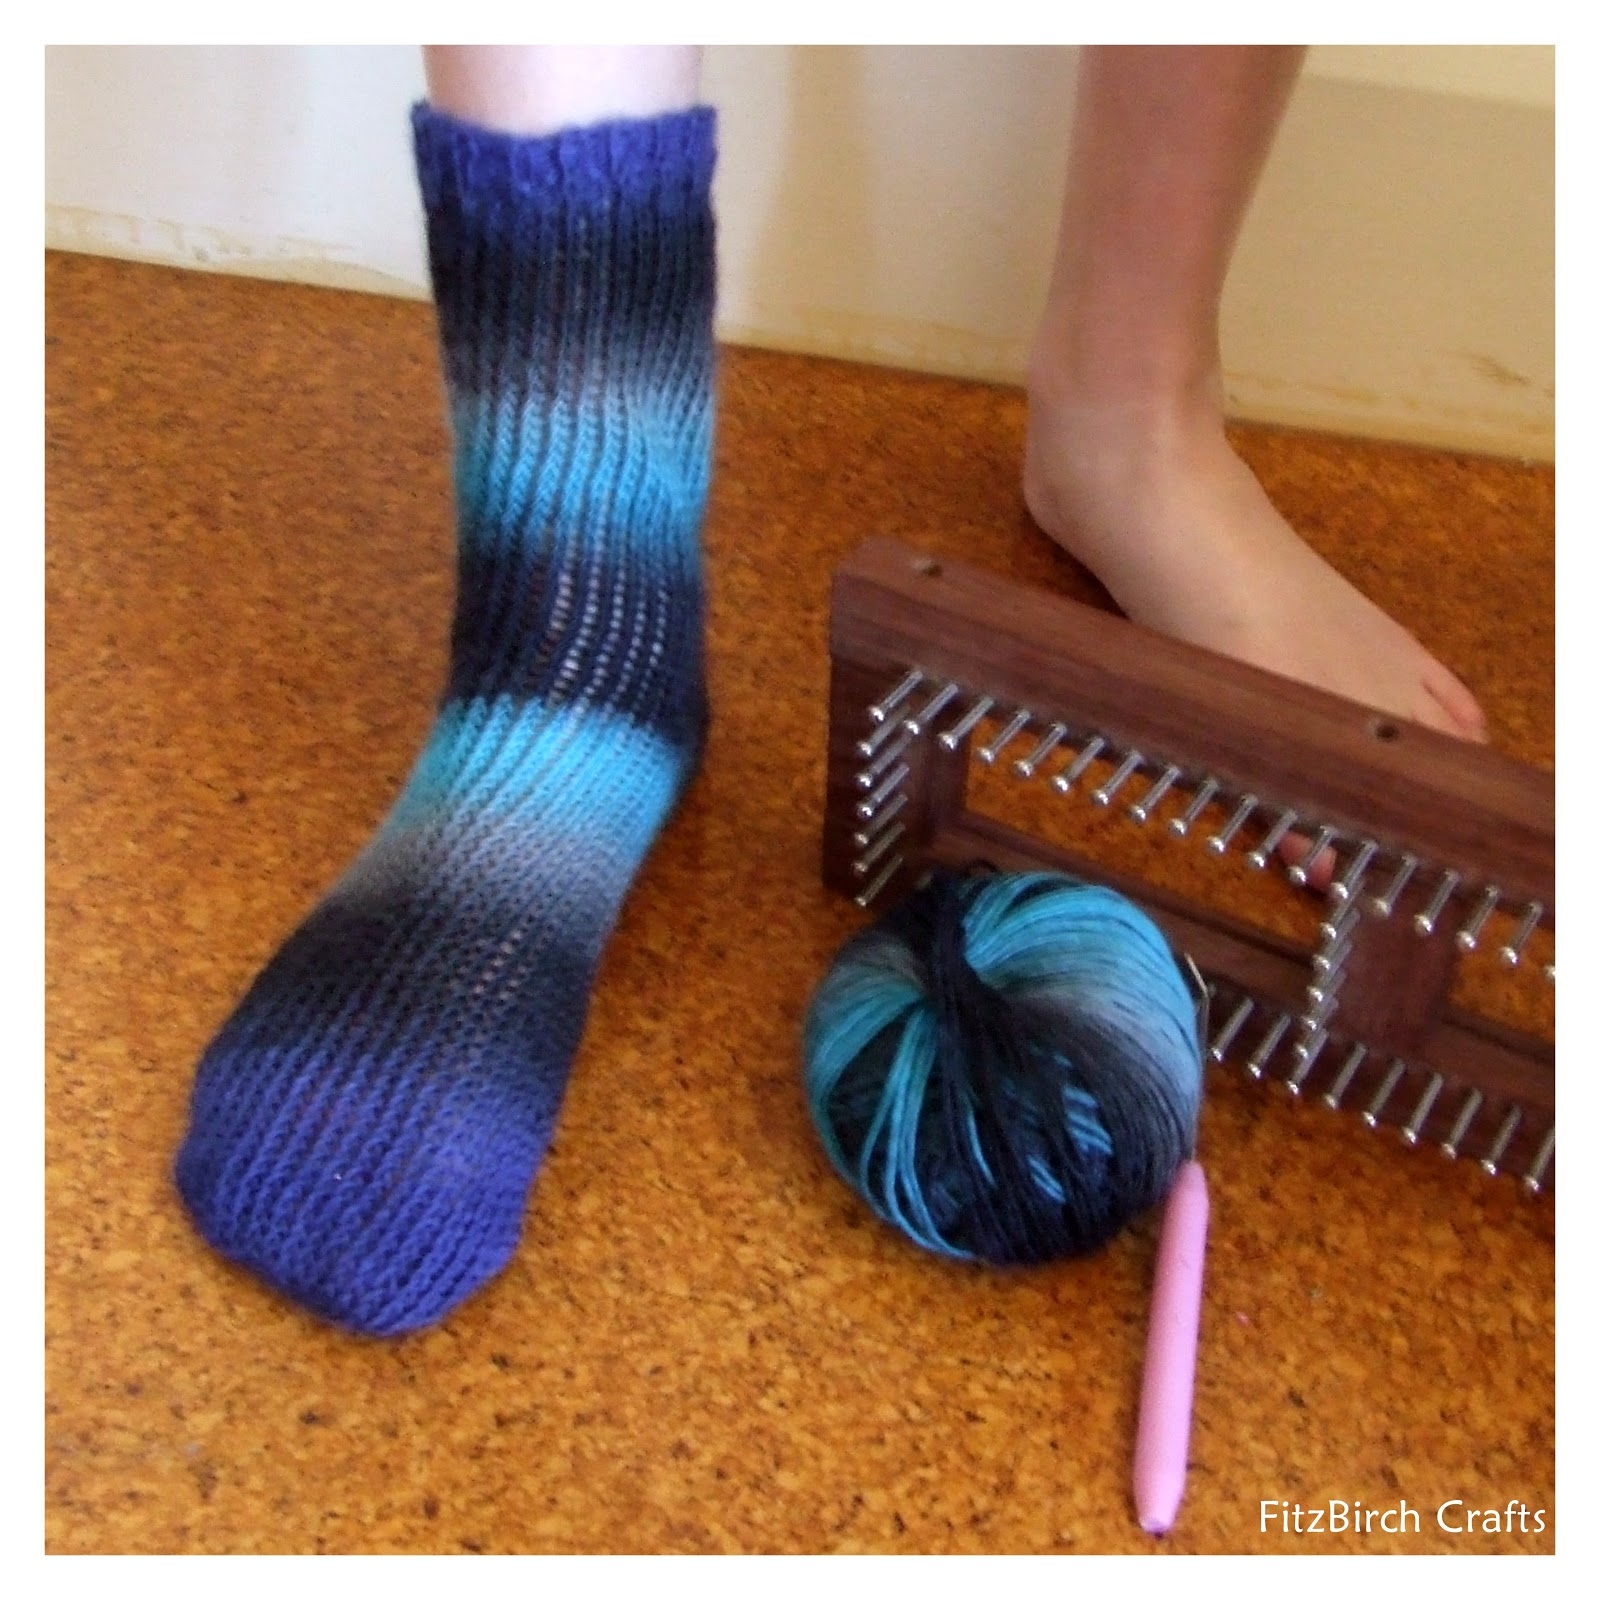 Knitting Loom Uses : Fitzbirch crafts loom knit socks